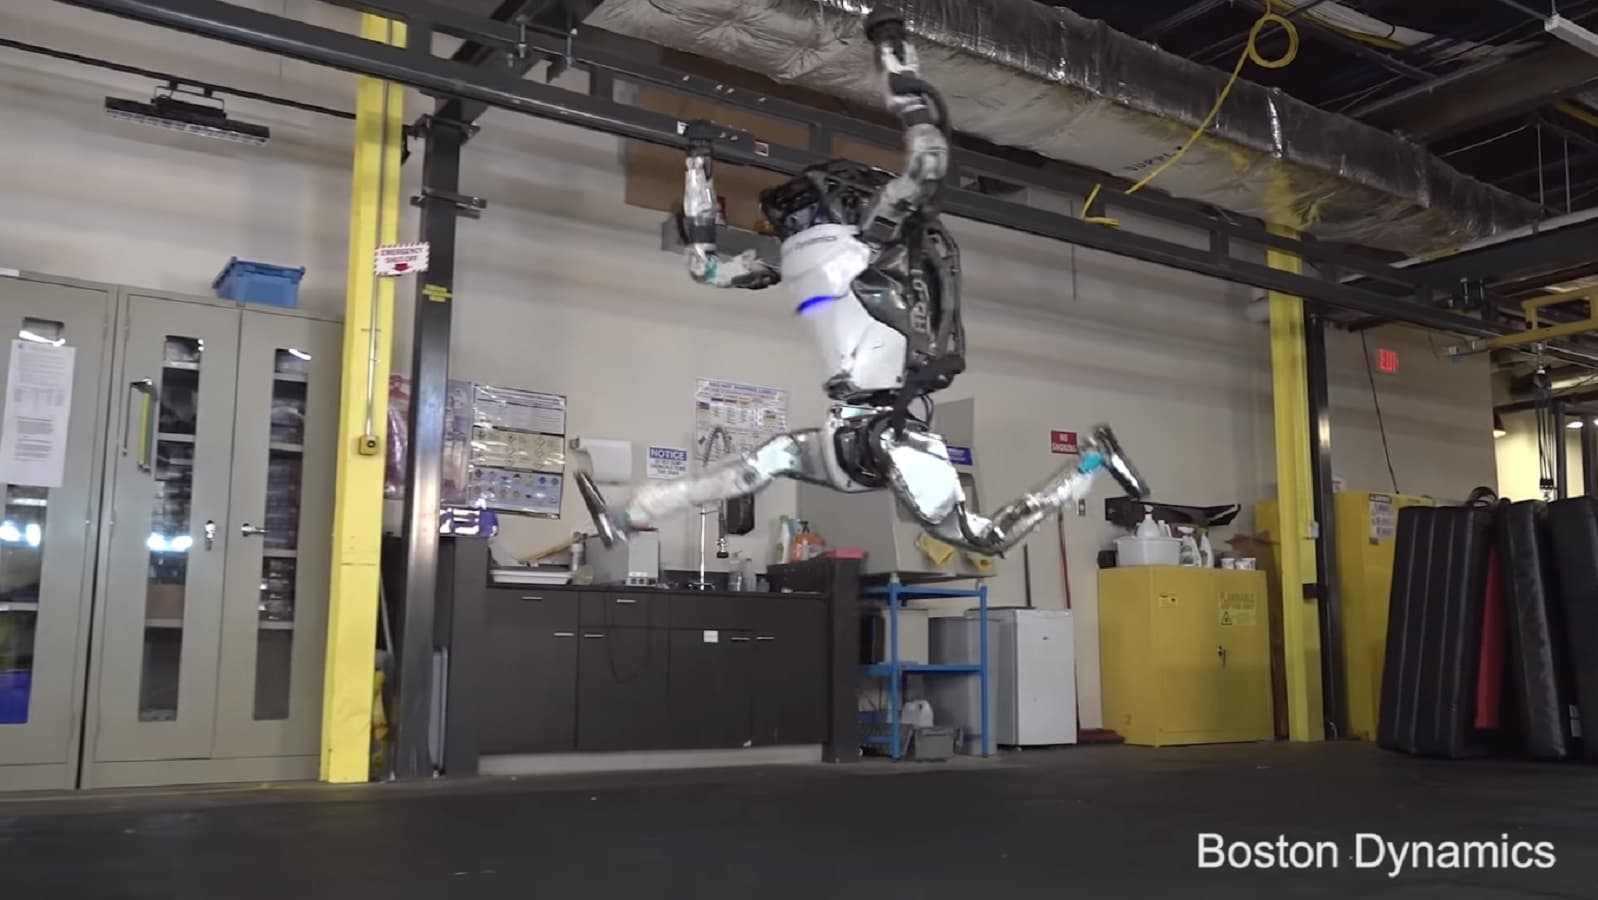 boston dynamics robot jumping